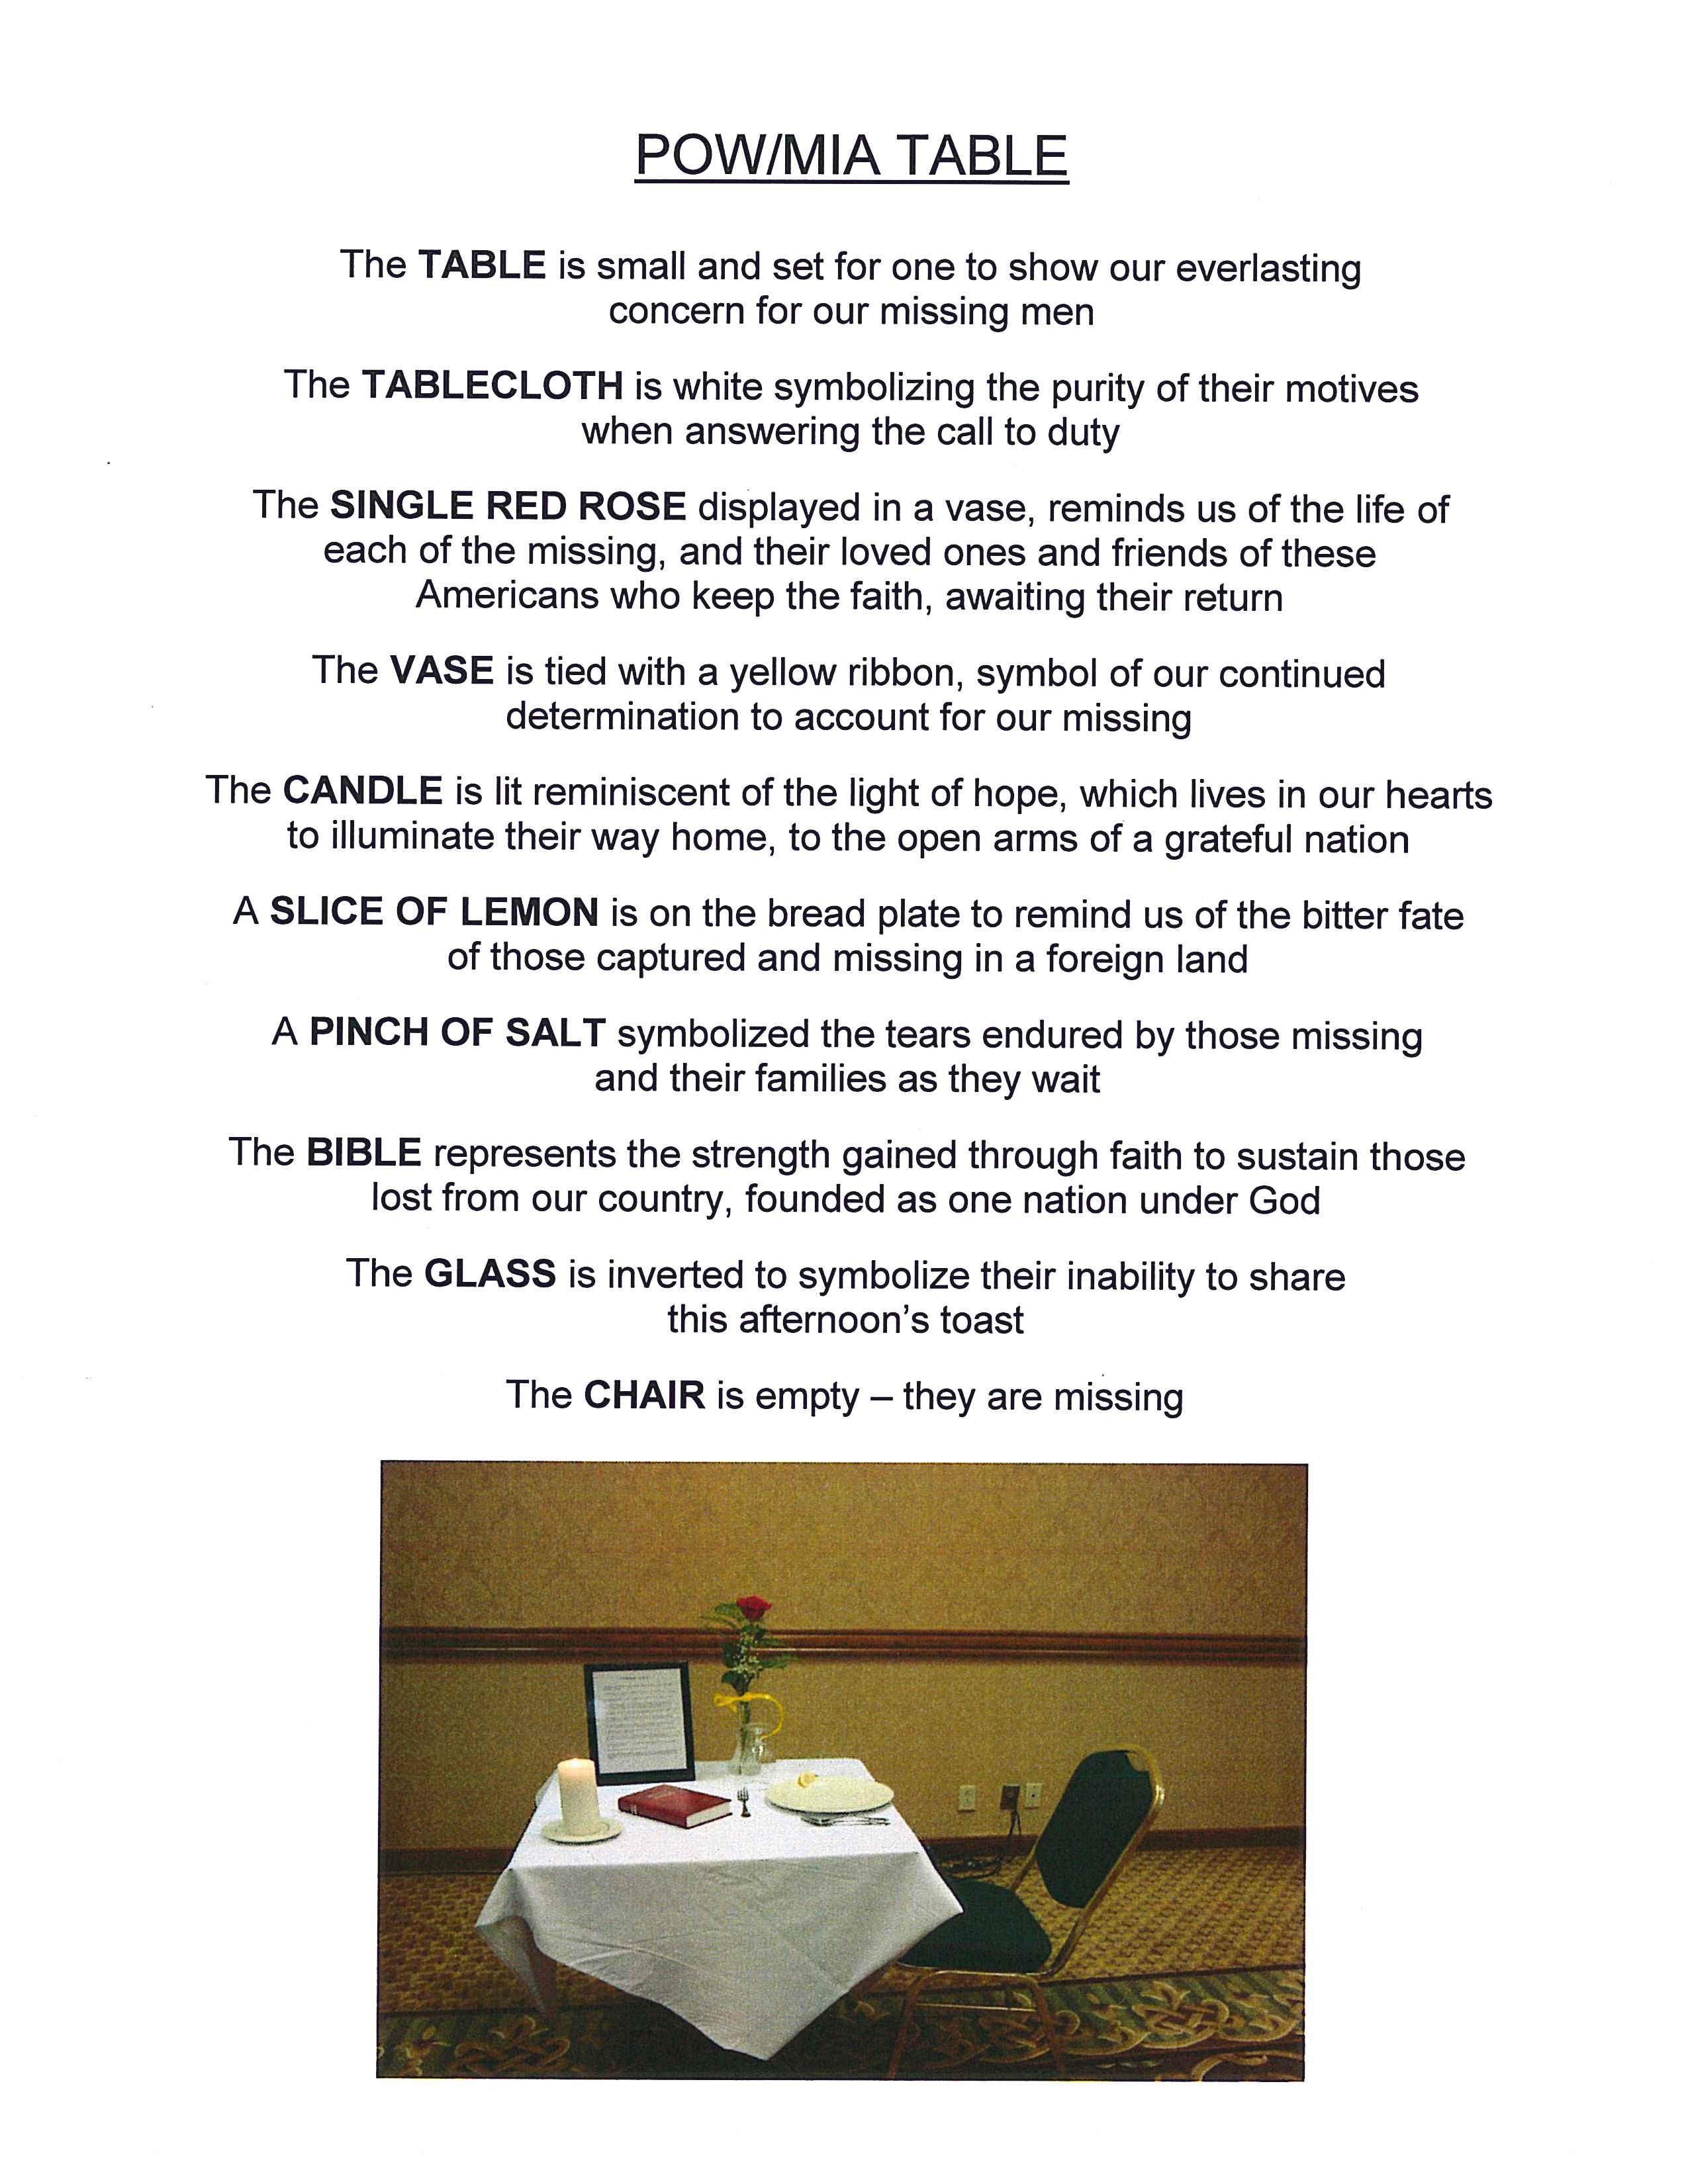 Effortless image with regard to missing man table poem printable